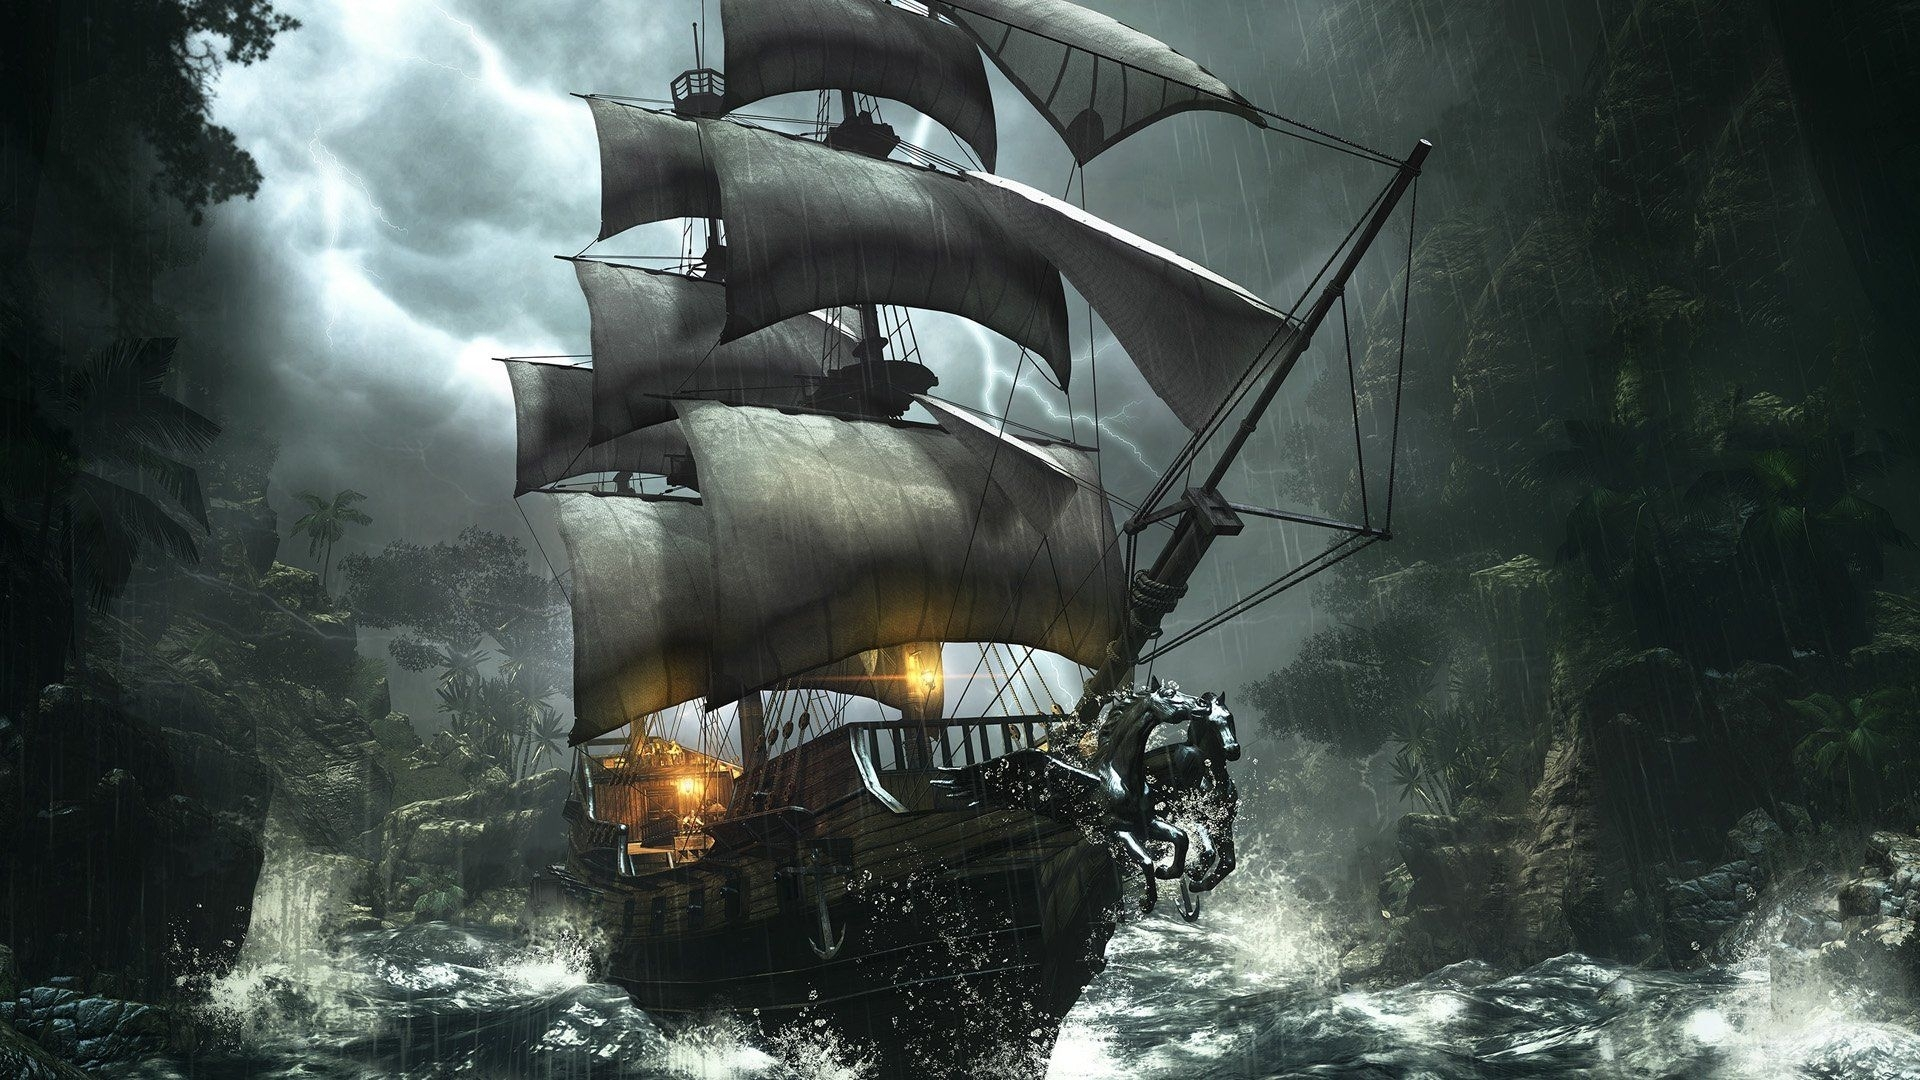 pirate ship wallpaper high definition #02c20 1920x1080 px 420.15 kb